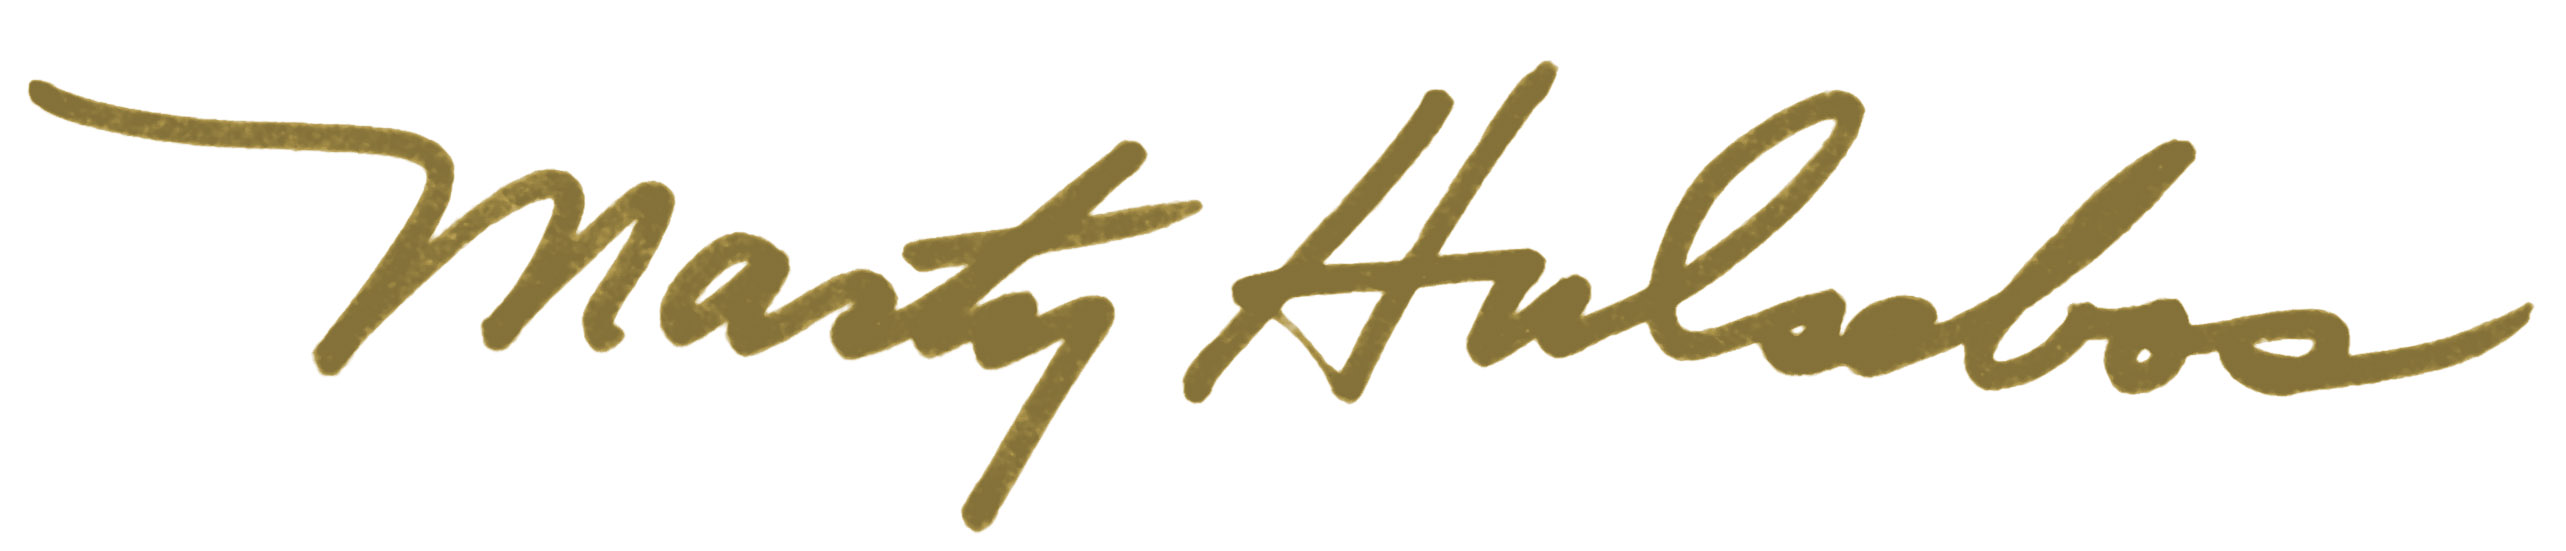 Marty Hulsebos's Signature